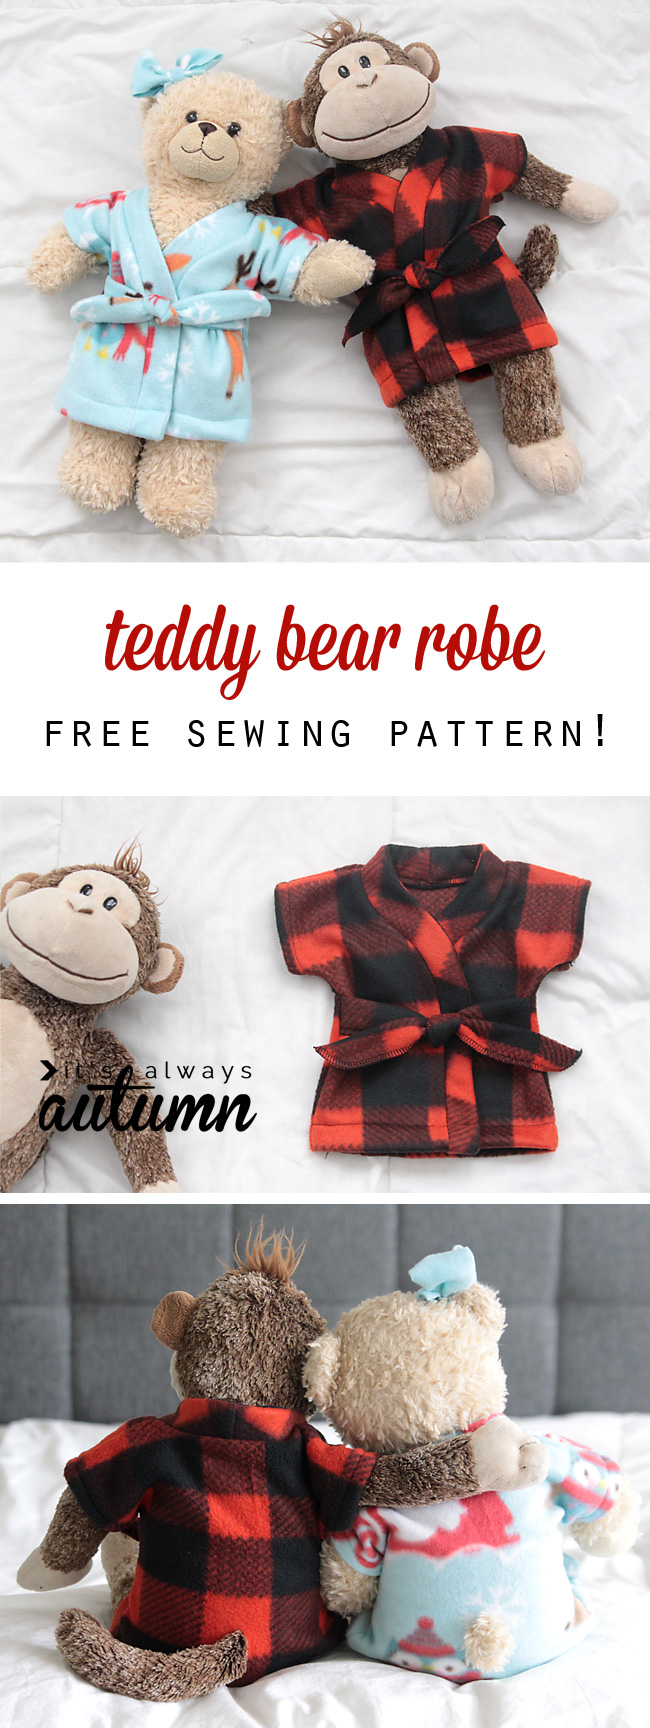 Stuffed animal teddy bear robe free sewing pattern its this is adorable im going to make some for christmas free stuffed jeuxipadfo Images